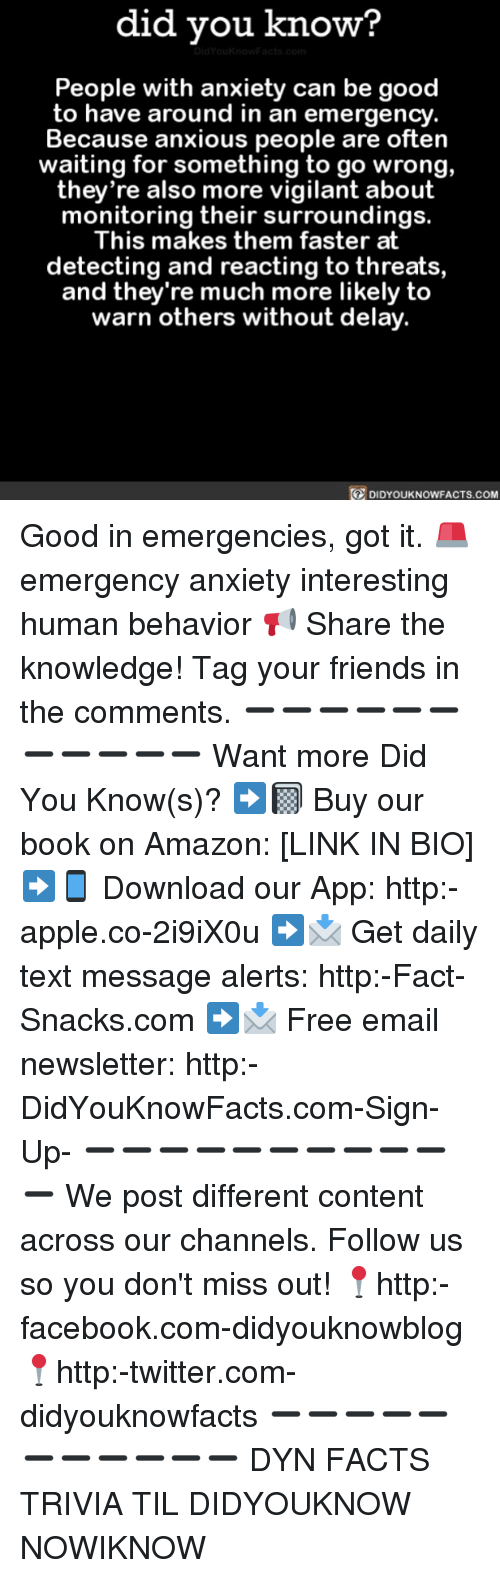 Amazon, Apple, and Facebook: did you know?  People with anxiety can be good  to have around in an emergency  Because anxious people are often  waiting for something to go wrong,  they're also more vigilant about  monitoring their surroundings.  This makes them faster at  detecting and reacting to threats  and they're much more likely to  warn others without delay.  DIDYOUKNOWFACTs.coM Good in emergencies, got it. 🚨 emergency anxiety interesting human behavior 📢 Share the knowledge! Tag your friends in the comments. ➖➖➖➖➖➖➖➖➖➖➖ Want more Did You Know(s)? ➡📓 Buy our book on Amazon: [LINK IN BIO] ➡📱 Download our App: http:-apple.co-2i9iX0u ➡📩 Get daily text message alerts: http:-Fact-Snacks.com ➡📩 Free email newsletter: http:-DidYouKnowFacts.com-Sign-Up- ➖➖➖➖➖➖➖➖➖➖➖ We post different content across our channels. Follow us so you don't miss out! 📍http:-facebook.com-didyouknowblog 📍http:-twitter.com-didyouknowfacts ➖➖➖➖➖➖➖➖➖➖➖ DYN FACTS TRIVIA TIL DIDYOUKNOW NOWIKNOW